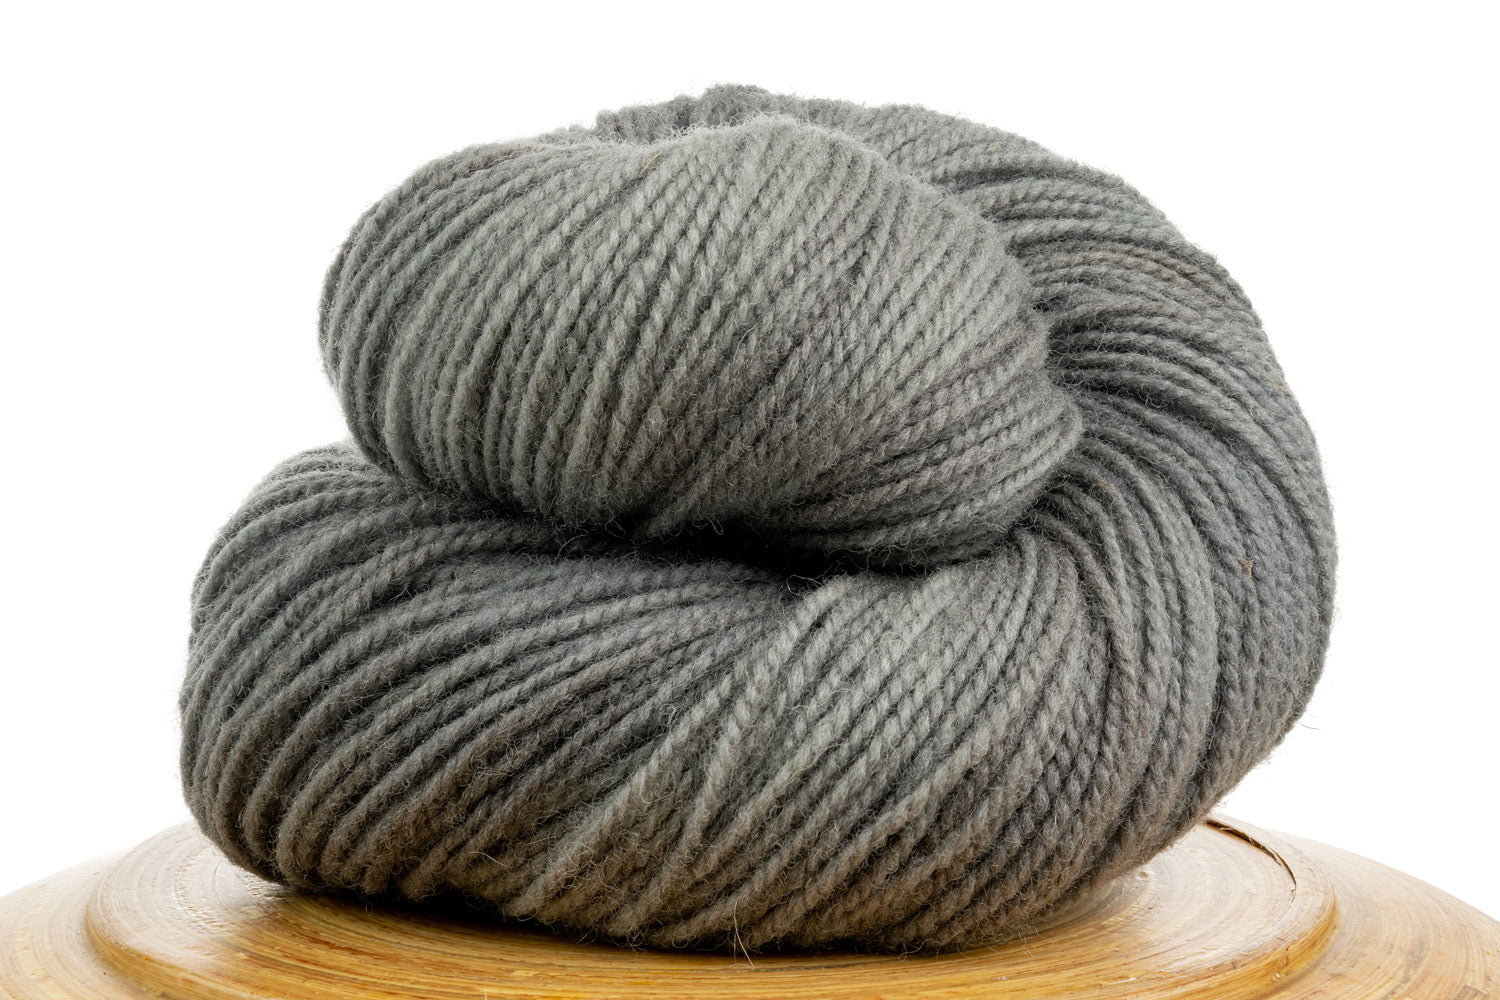 Winfield Canadian hand-dyed yarn in Fog, a medium cool grey